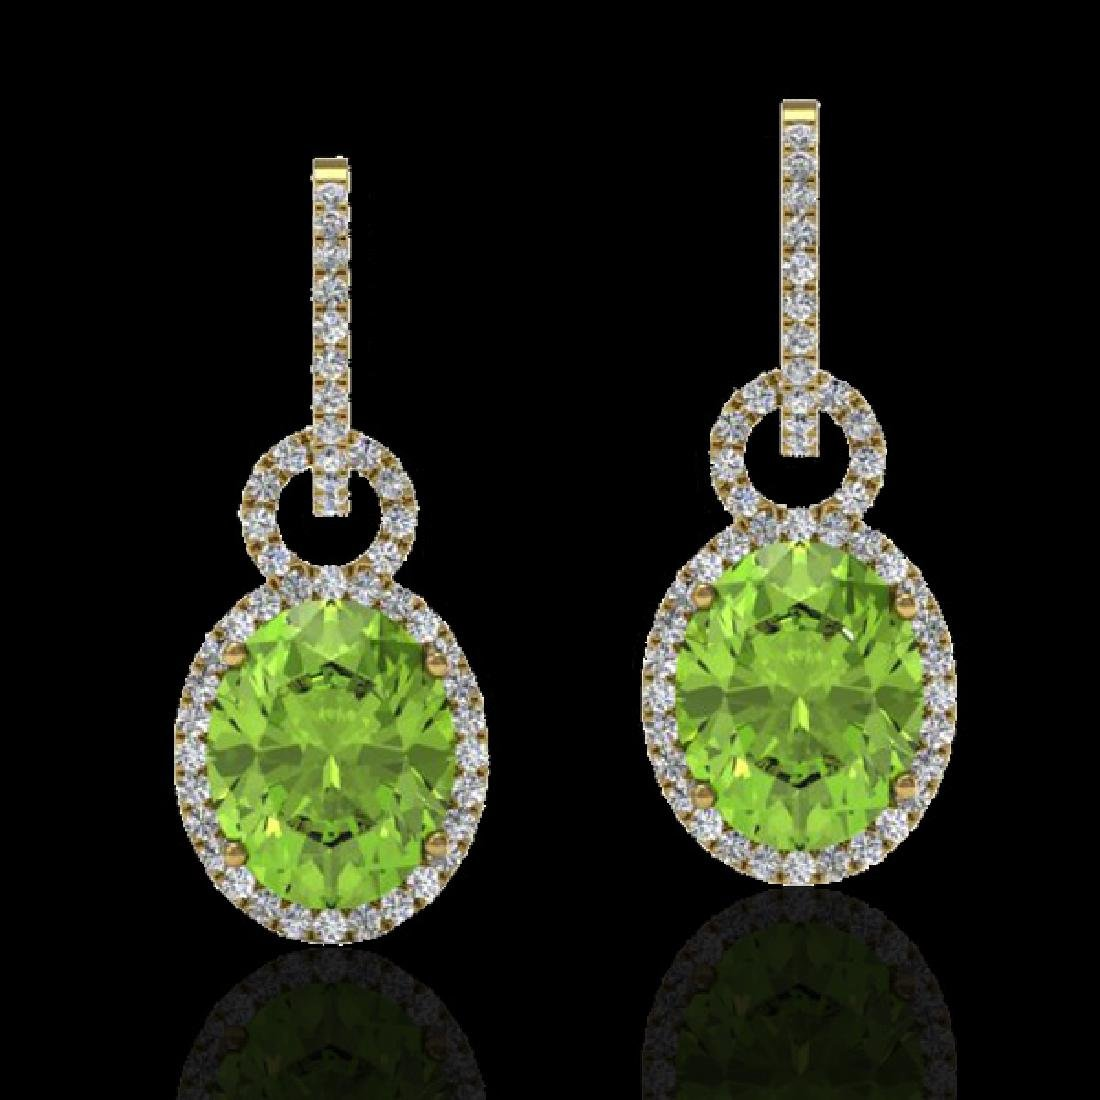 6 CTW Peridot & Micro Pave Solitaire Halo VS/SI Diamond